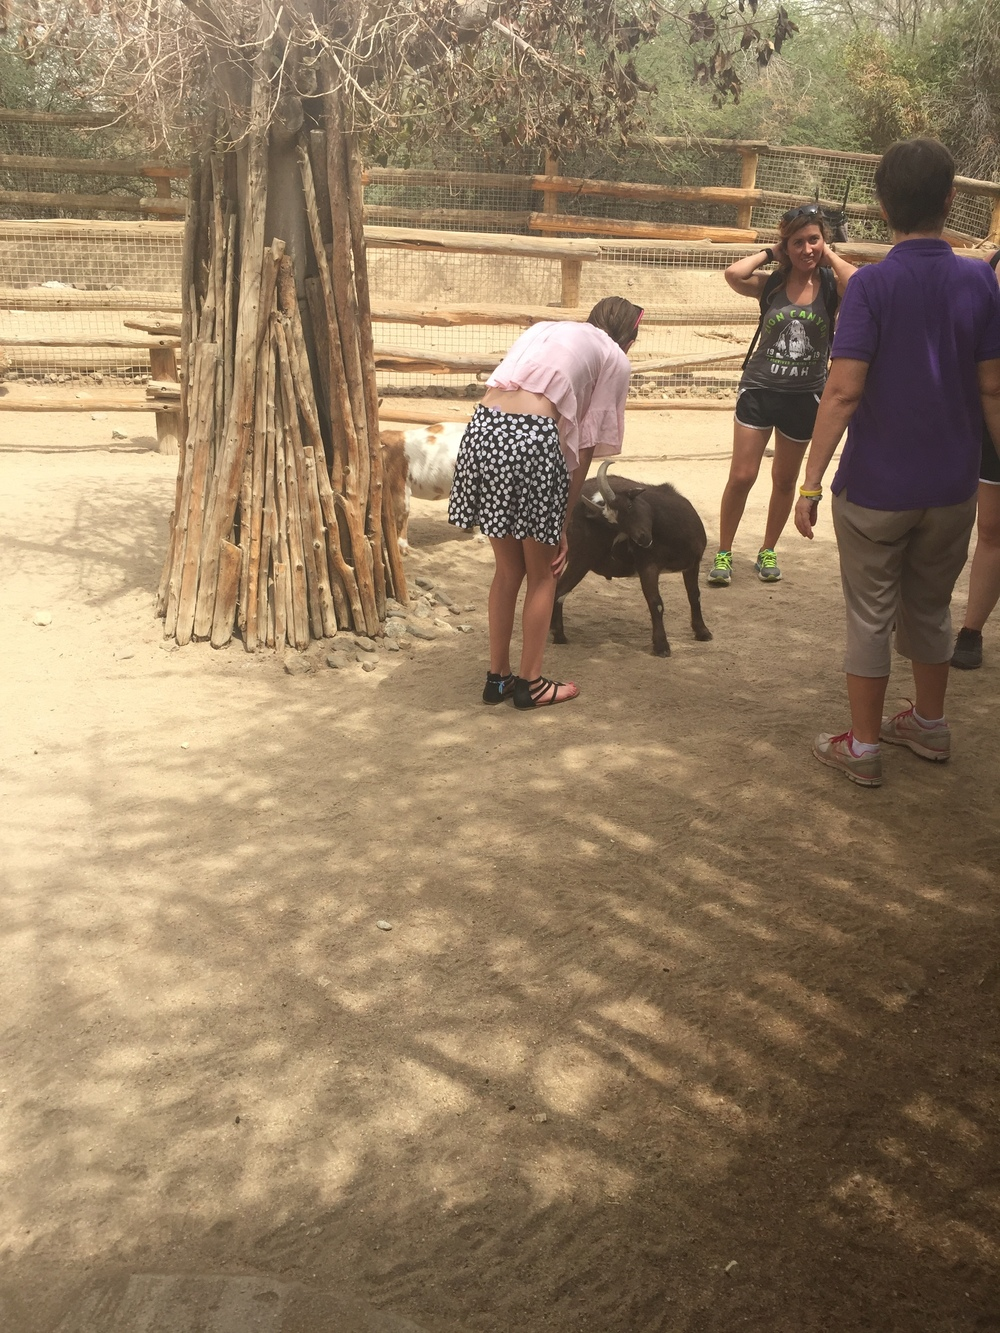 Petting goats at the Living Desert Zoo